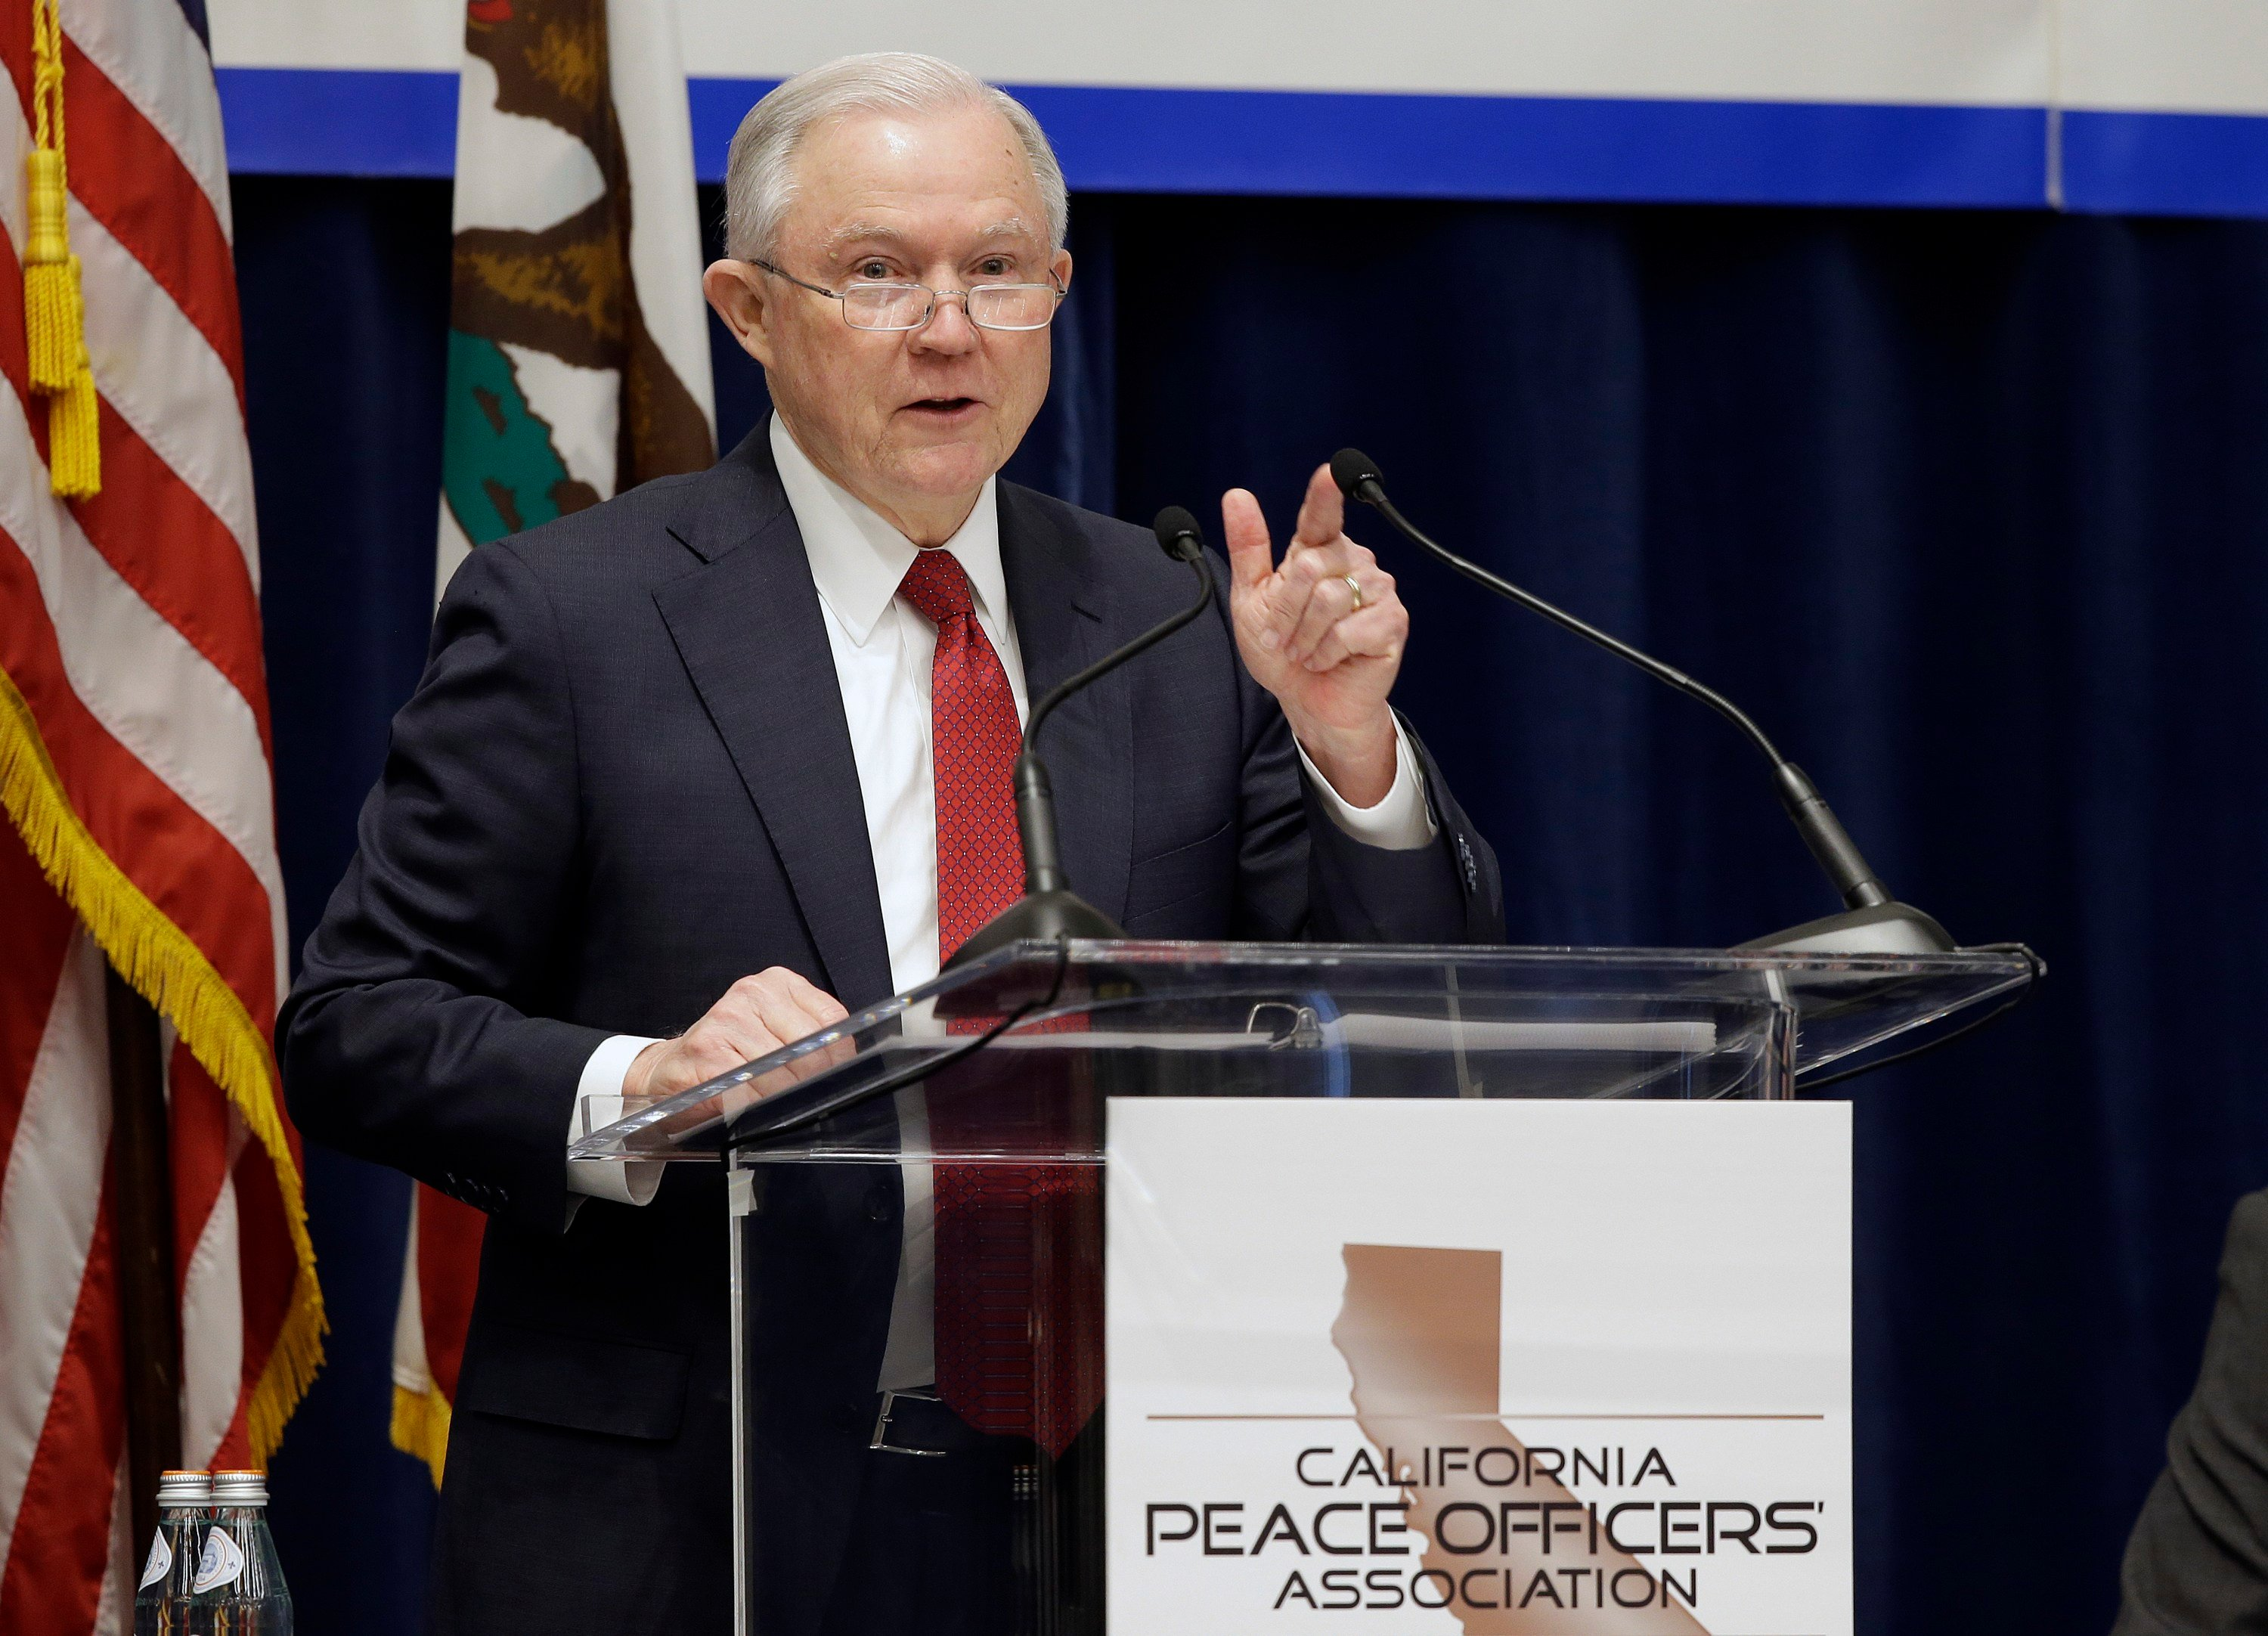 U.S. Attorney General Jeff Sessions addresses the California Peace Officers' Los Alamitos will consider an ordinance to exempt itself from a state law that limits cooperation between local police and federal immigration agents. (AP Photo/Rich Pedroncelli)